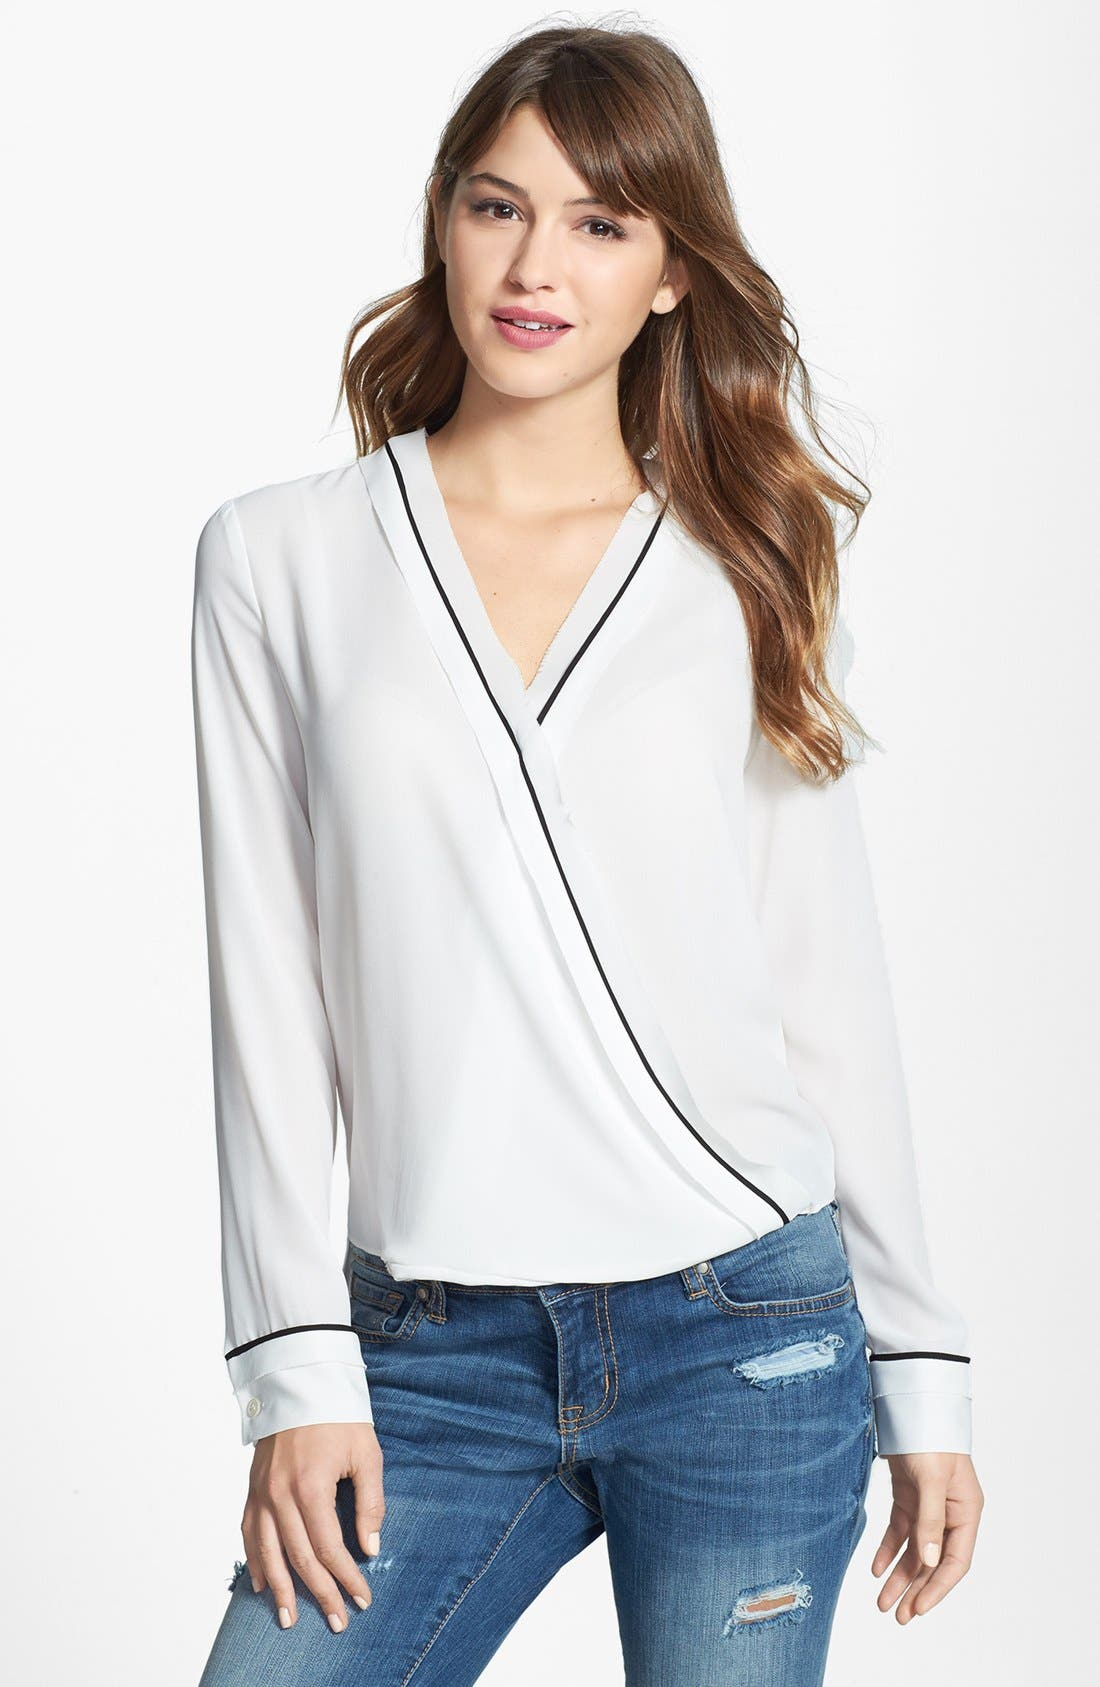 Alternate Image 1 Selected - Vince Camuto Contrast Trim Wrap Front Blouse